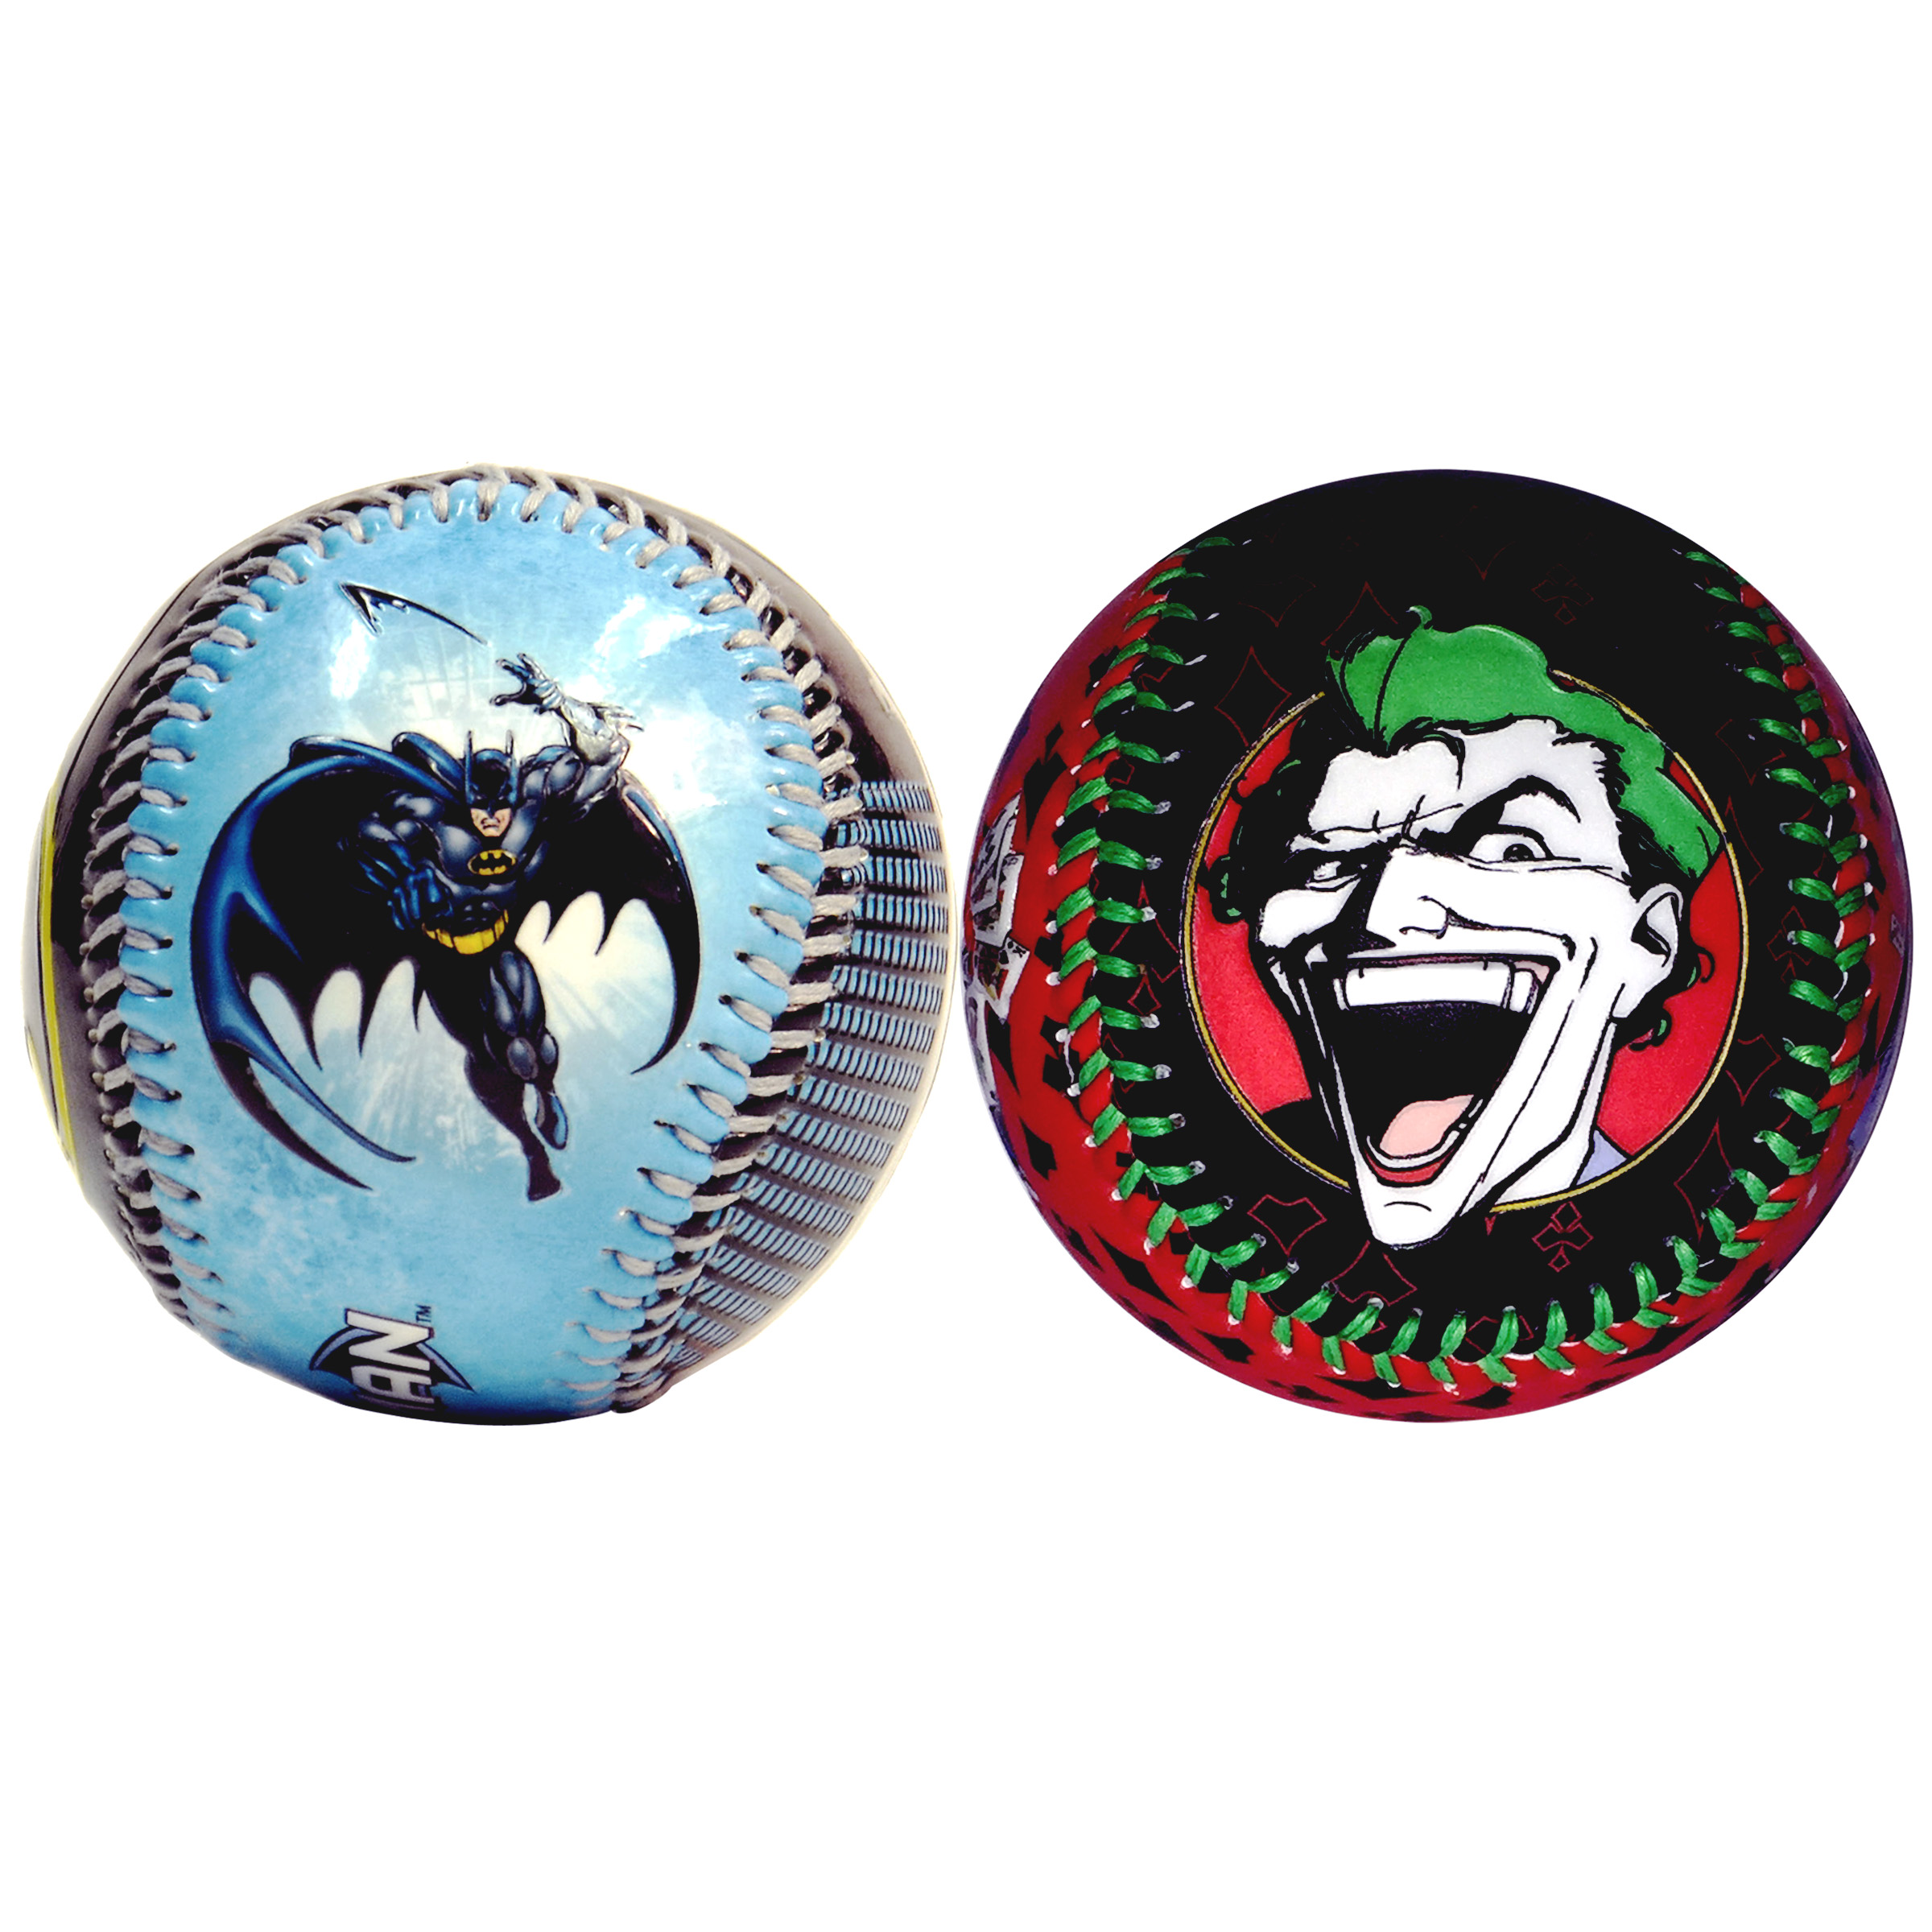 Batman In Action & The Joker Throwing Playing Cards DC Comics Set of 2 Baseballs